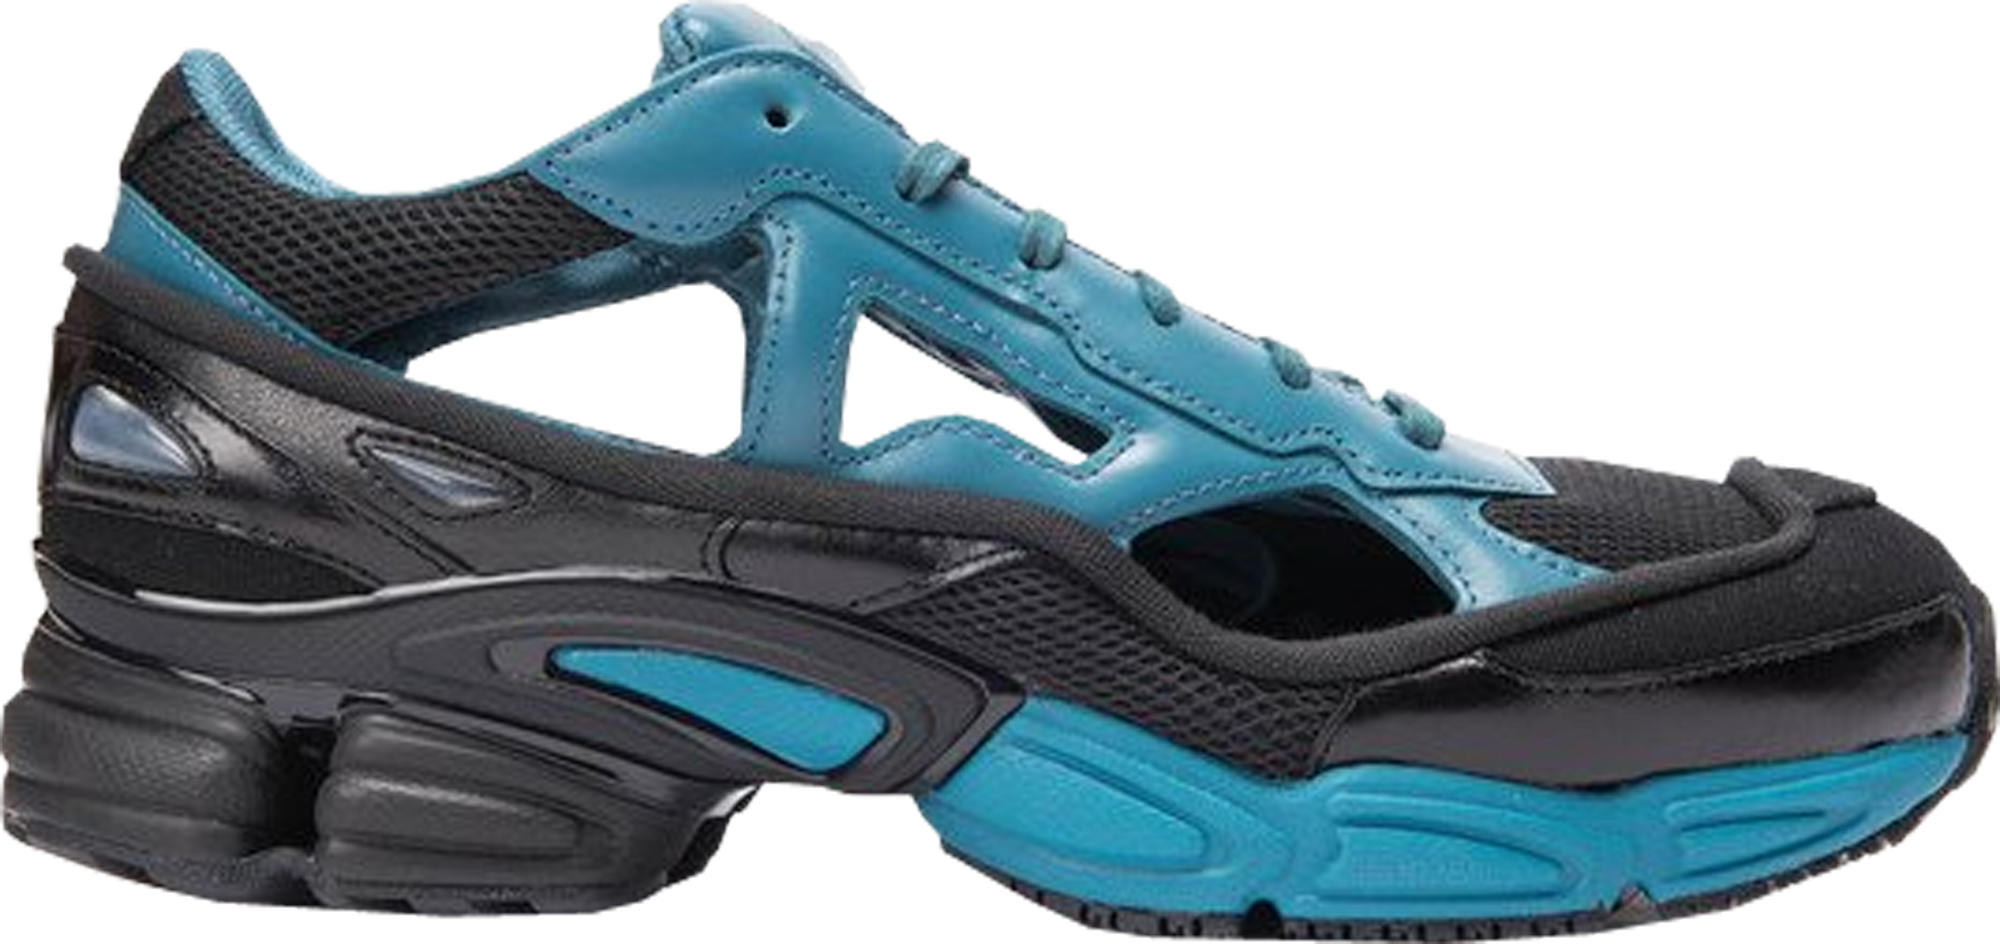 adidas RS Replicant Ozweego Raf Simons Colonial Blue (Special Edition with Socks)